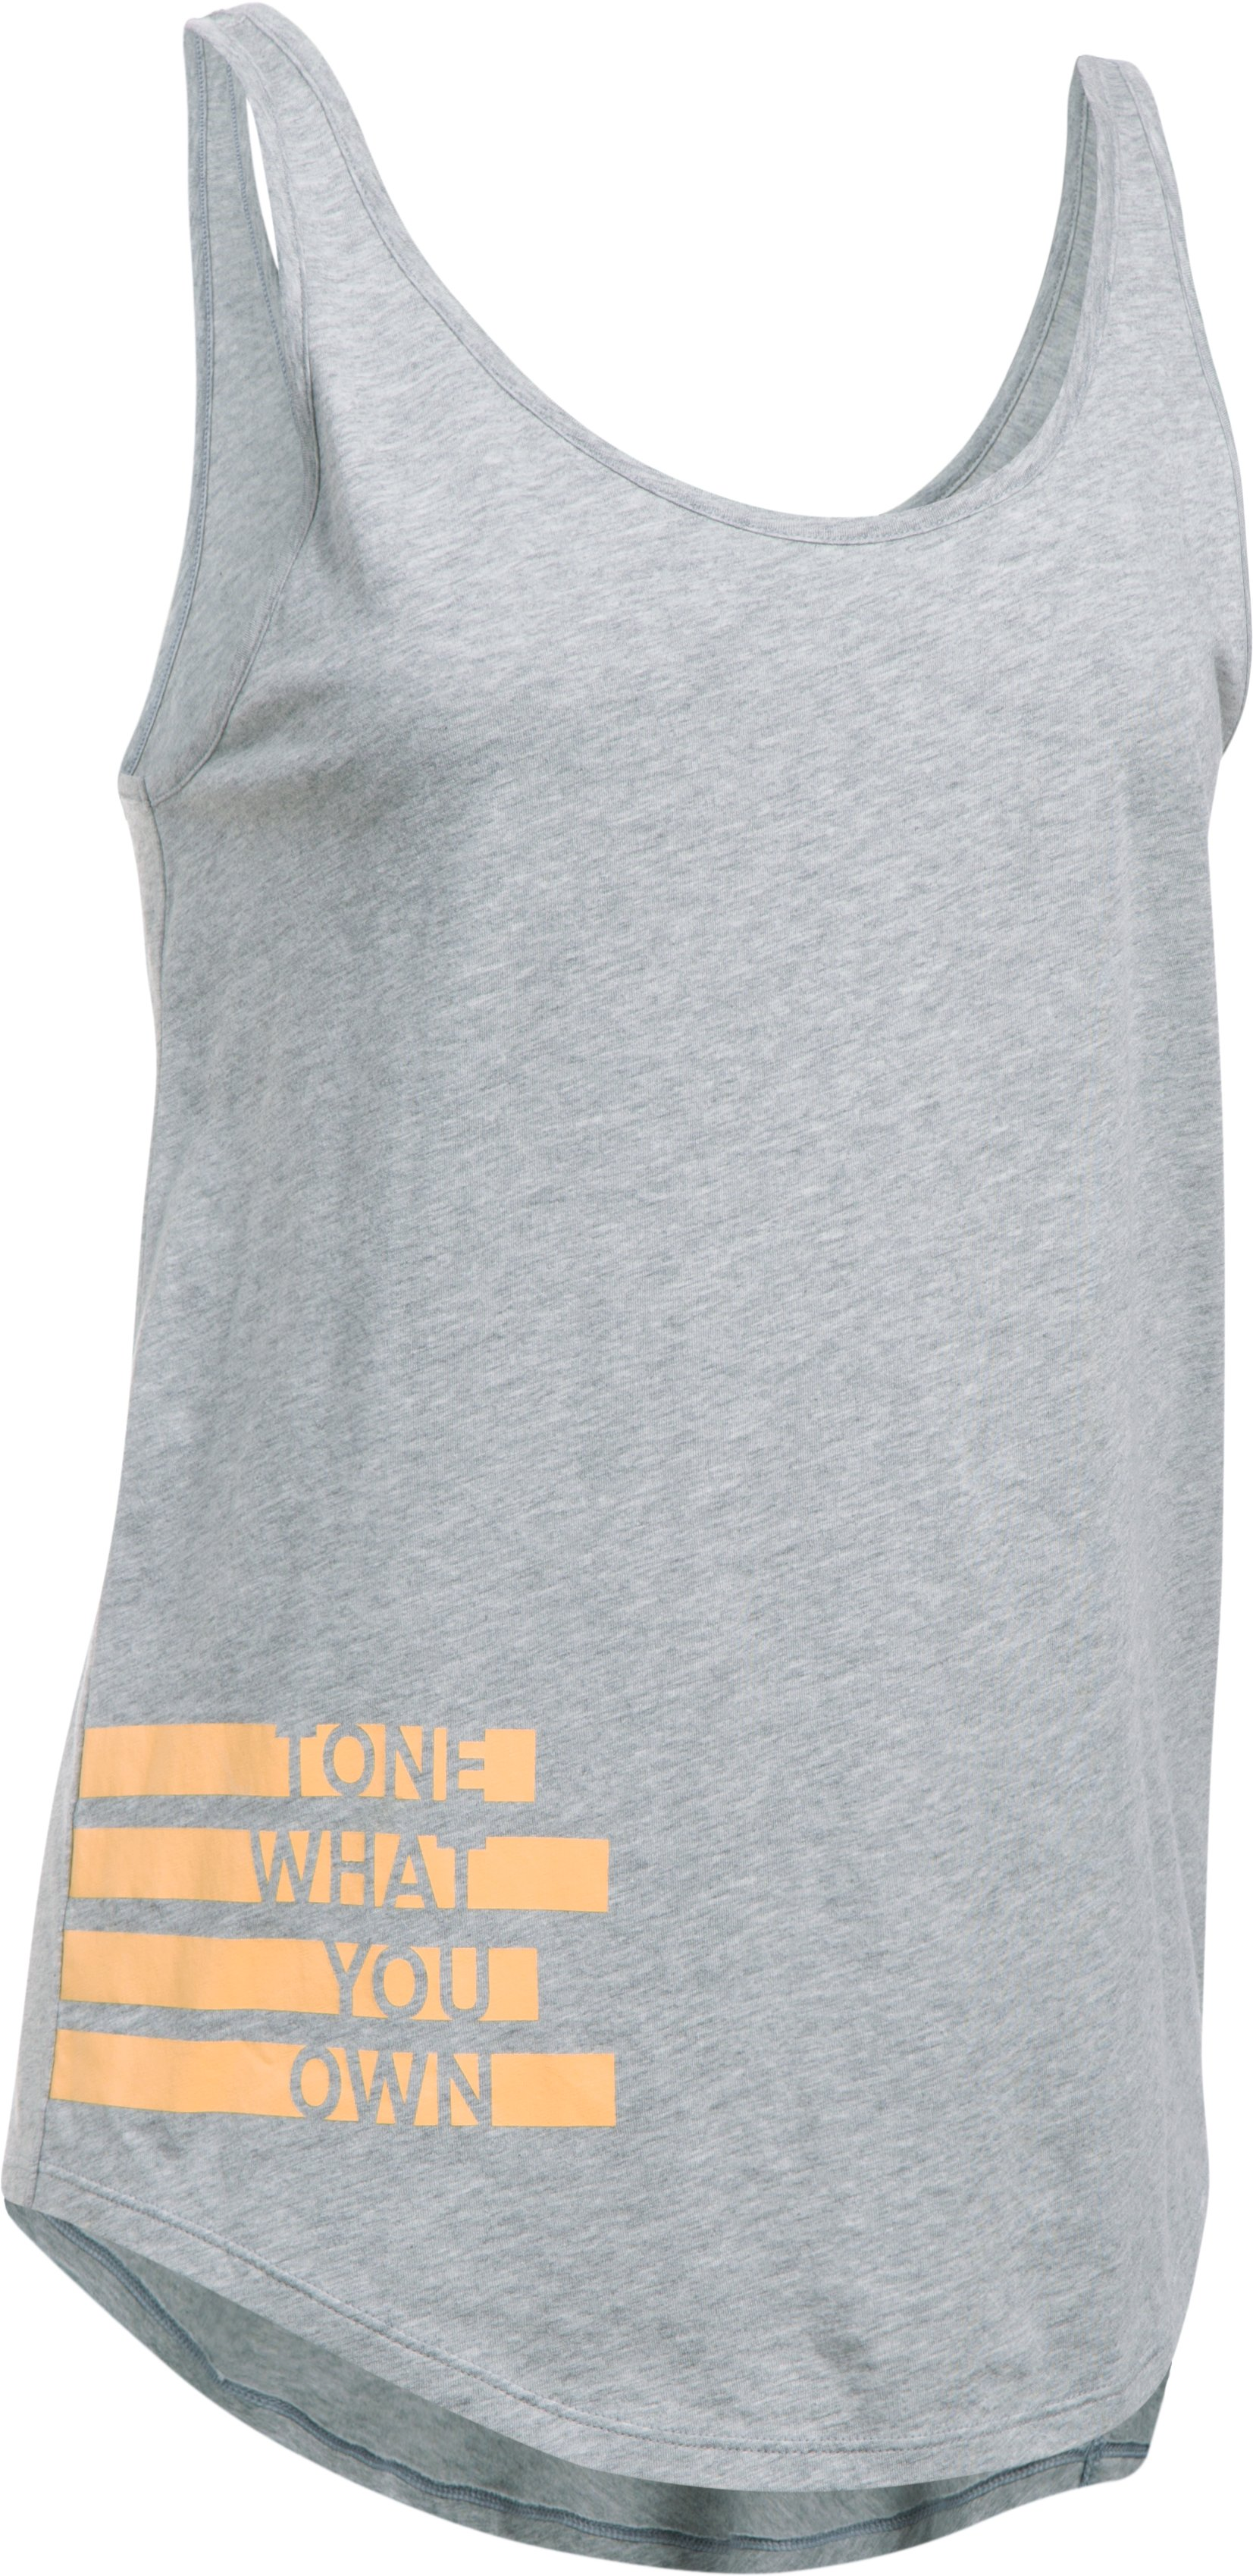 Women's UA Tone What You Own Tank, True Gray Heather, undefined